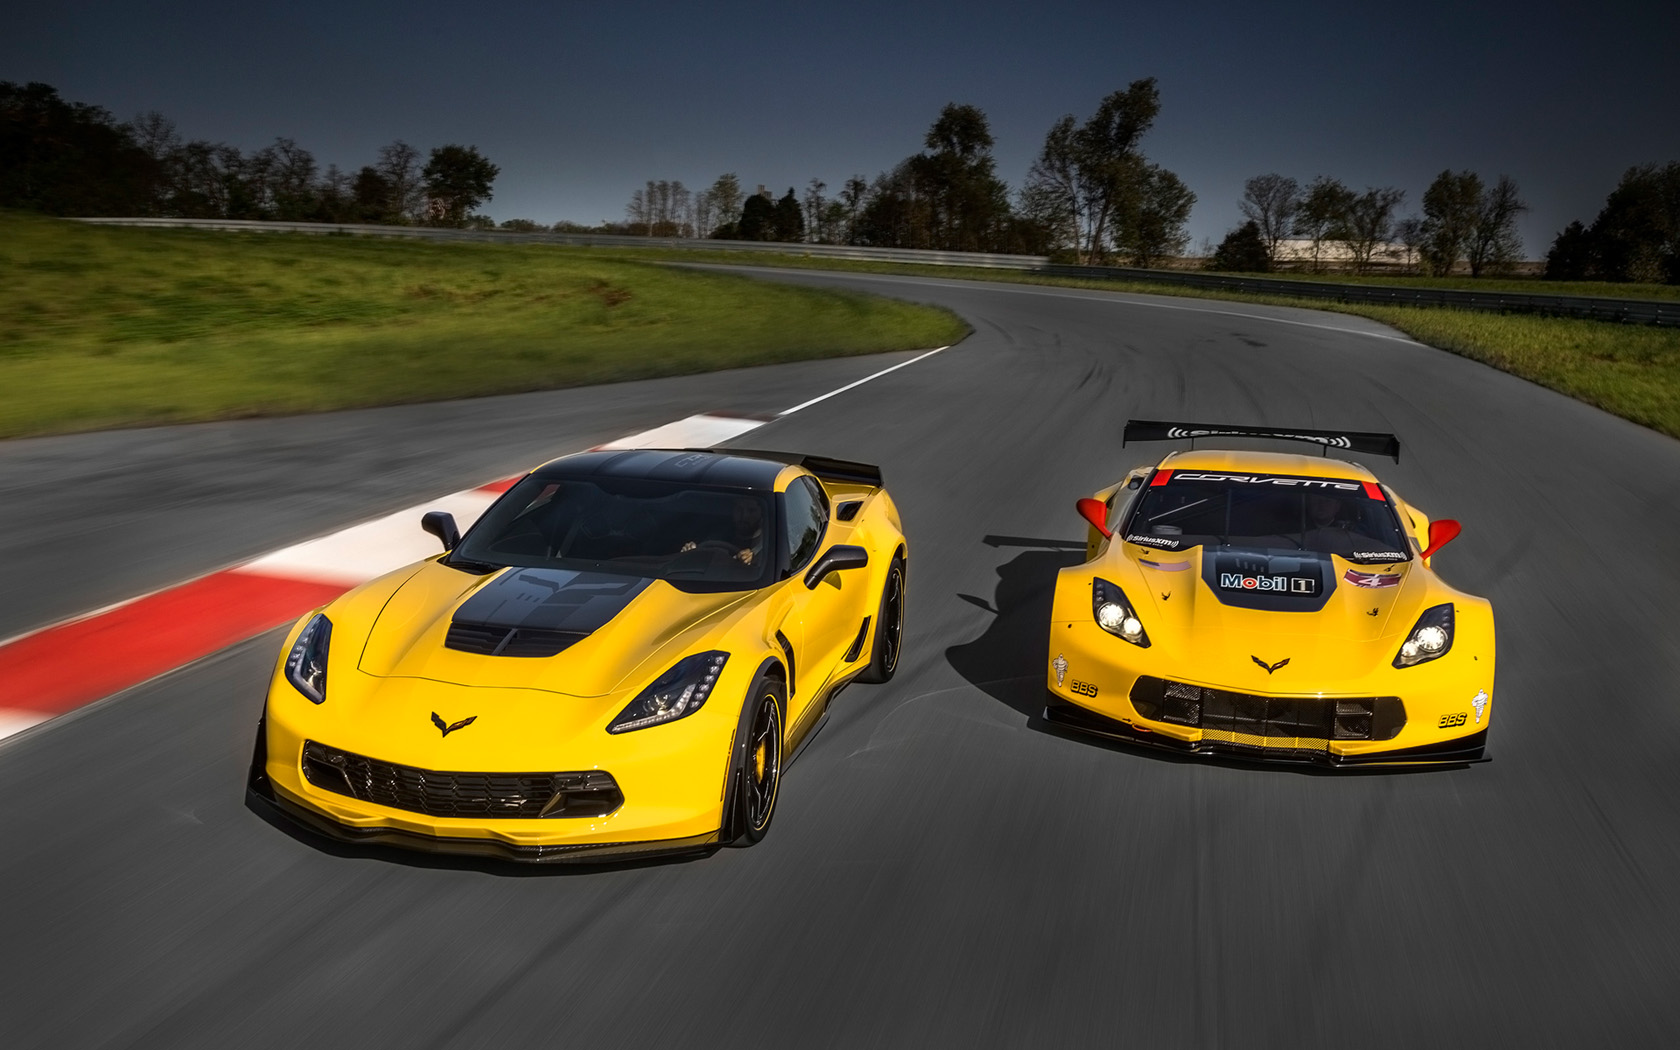 2016 Chevrolet Corvette Z06 C7R Edition   Duo   3   1680x1050 1680x1050